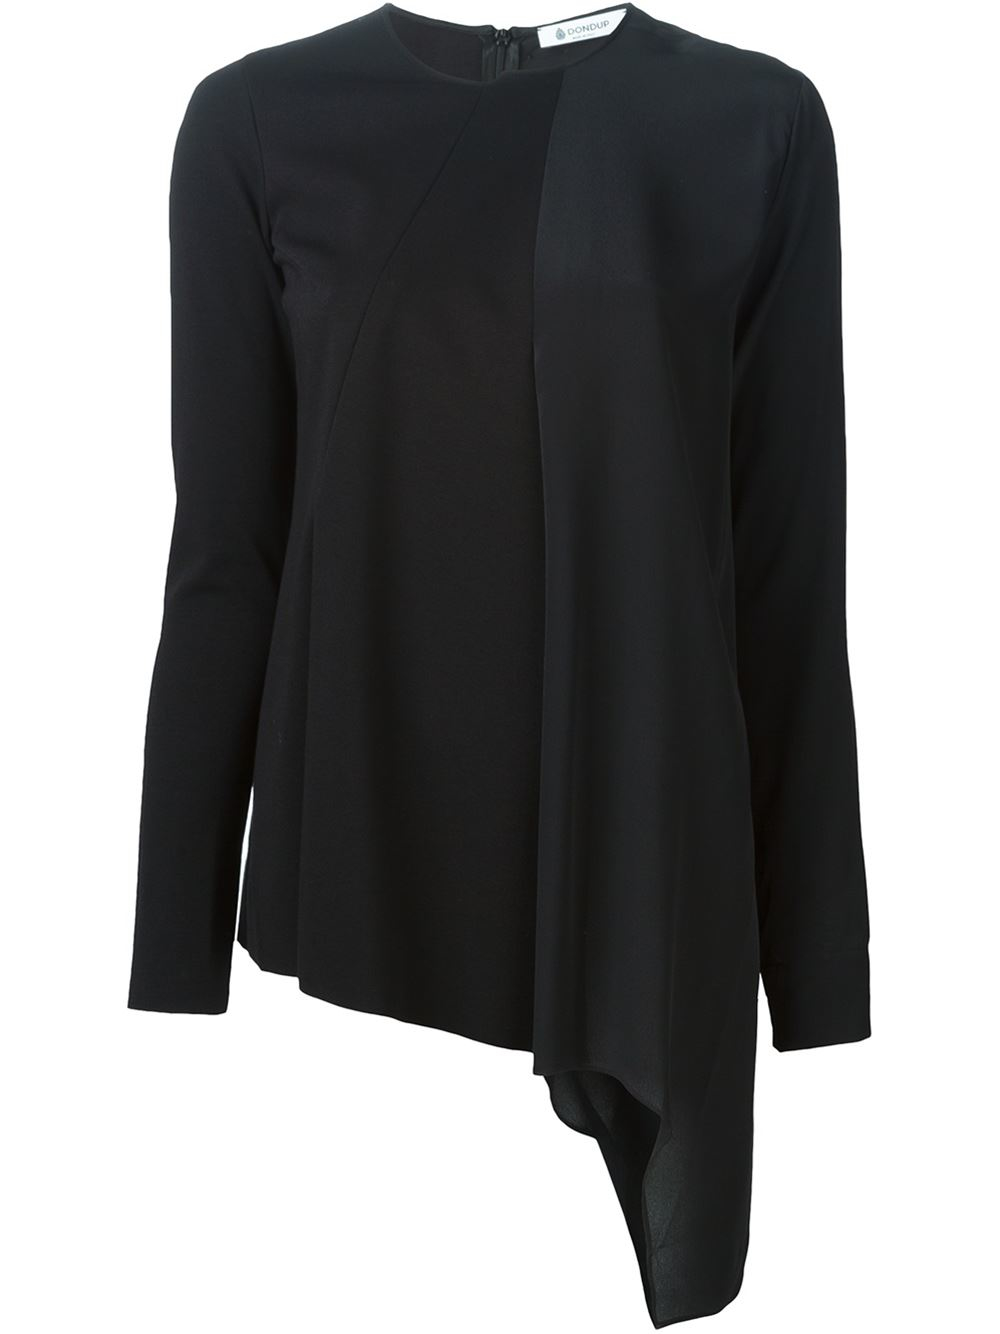 Dondup asymmetric draped front t shirt in black lyst for Thrilla in manila shirt under armour